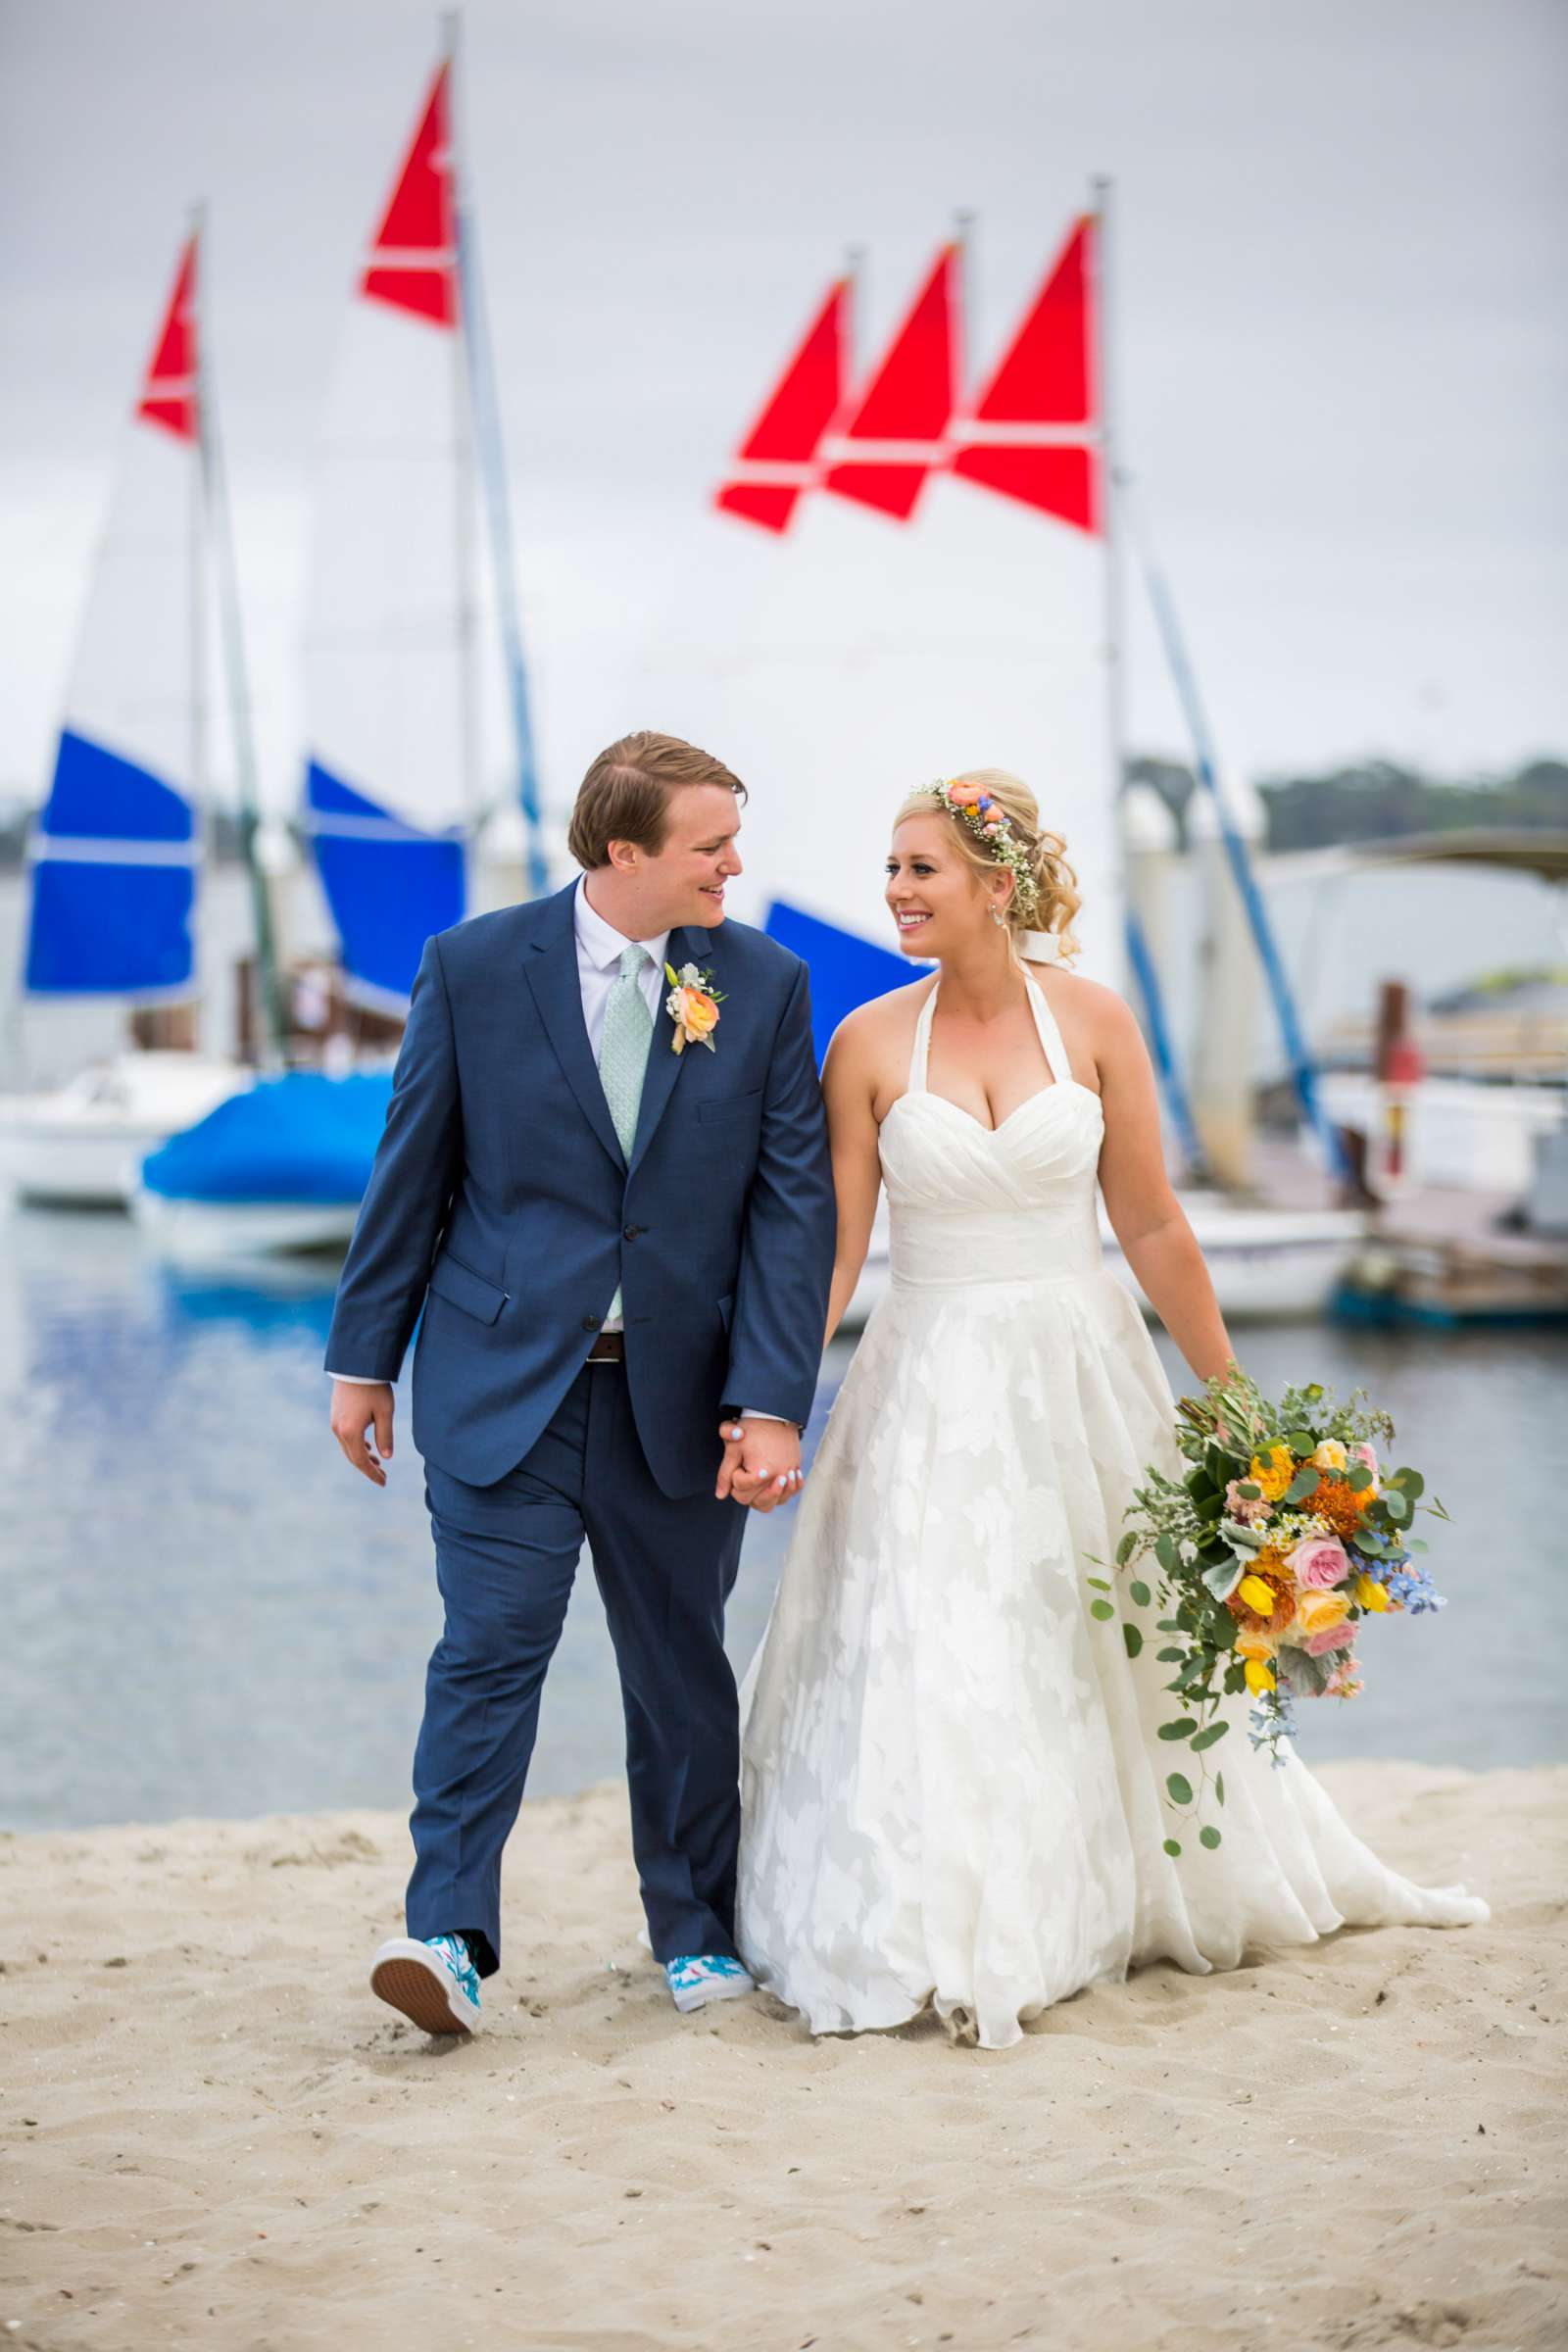 Catamaran Resort Wedding coordinated by Lavish Weddings, Brittany and David Wedding Photo #92 by True Photography